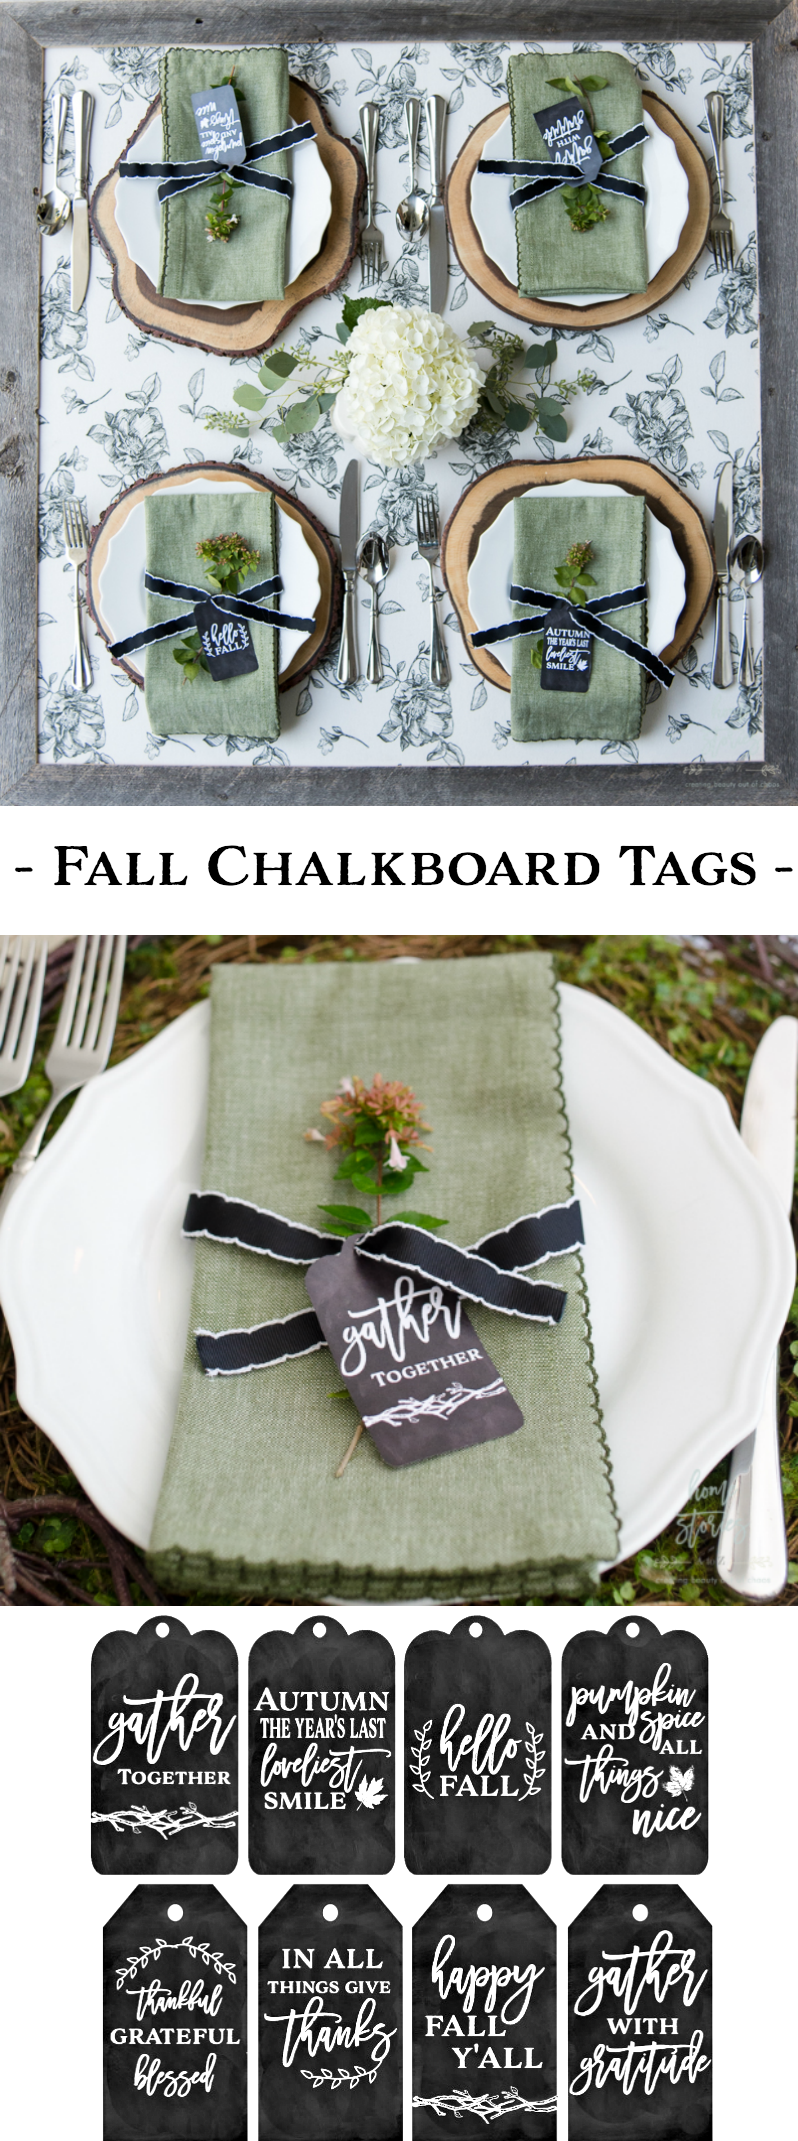 fall chalkboard tags free printable